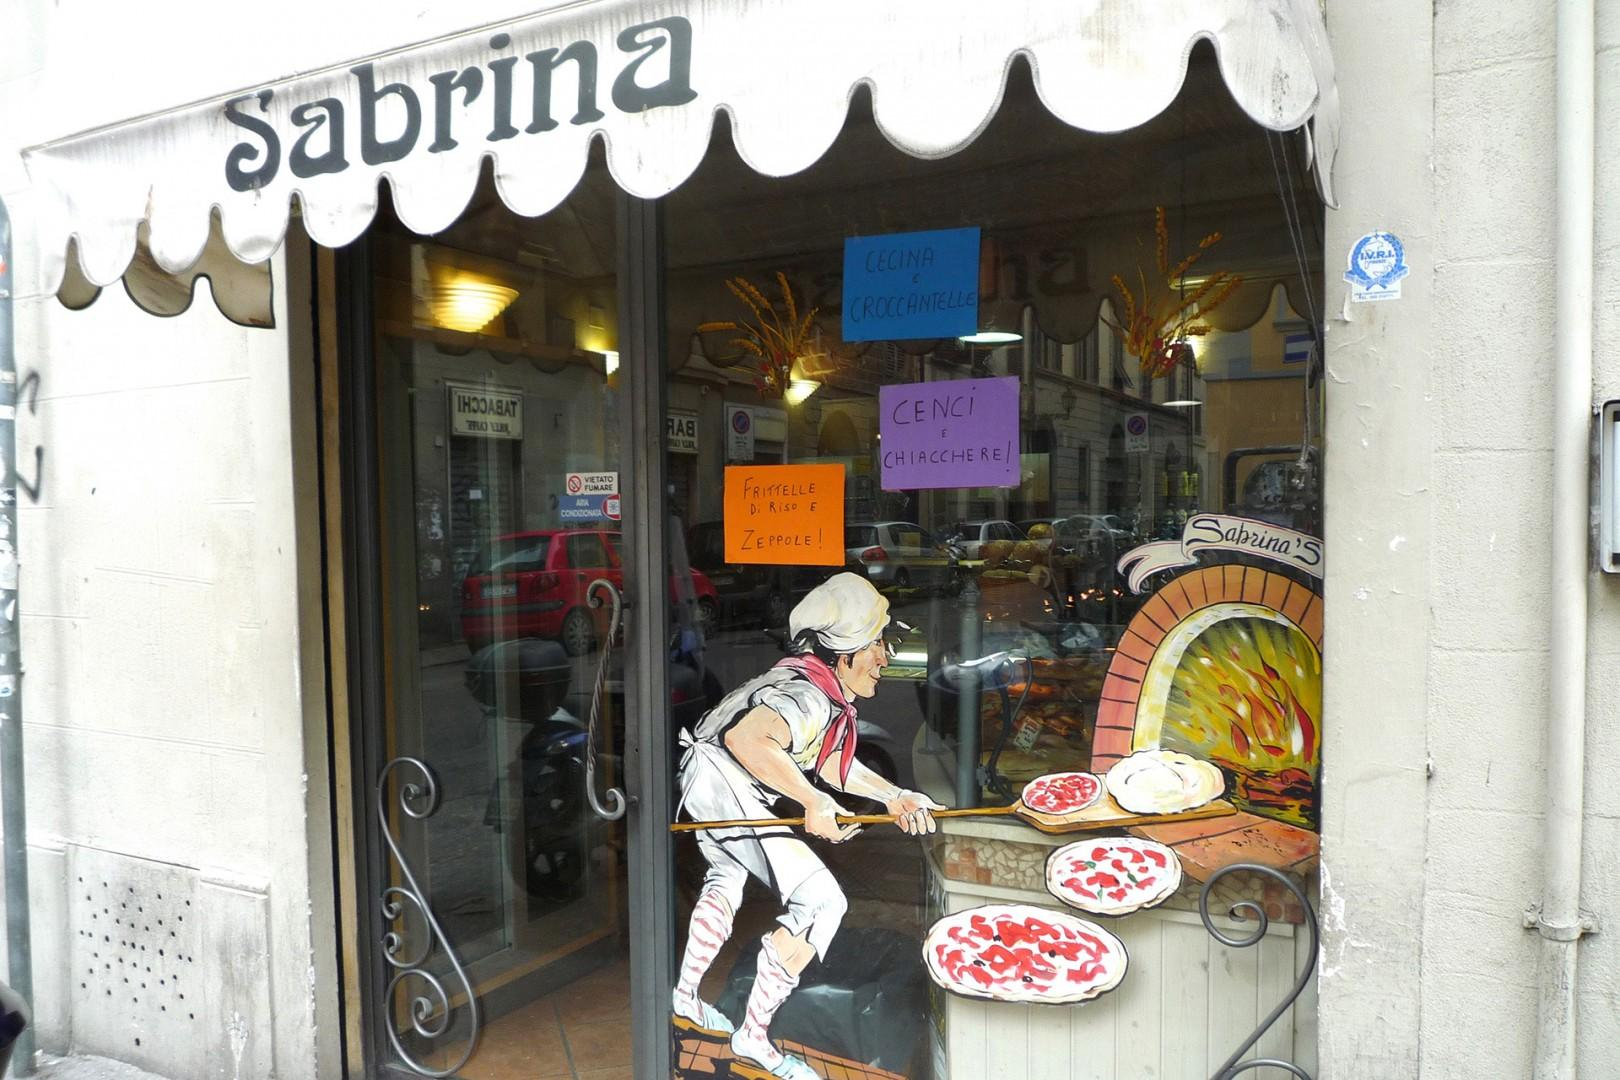 The same bakery at the corner that sells pastries also has good pizza.